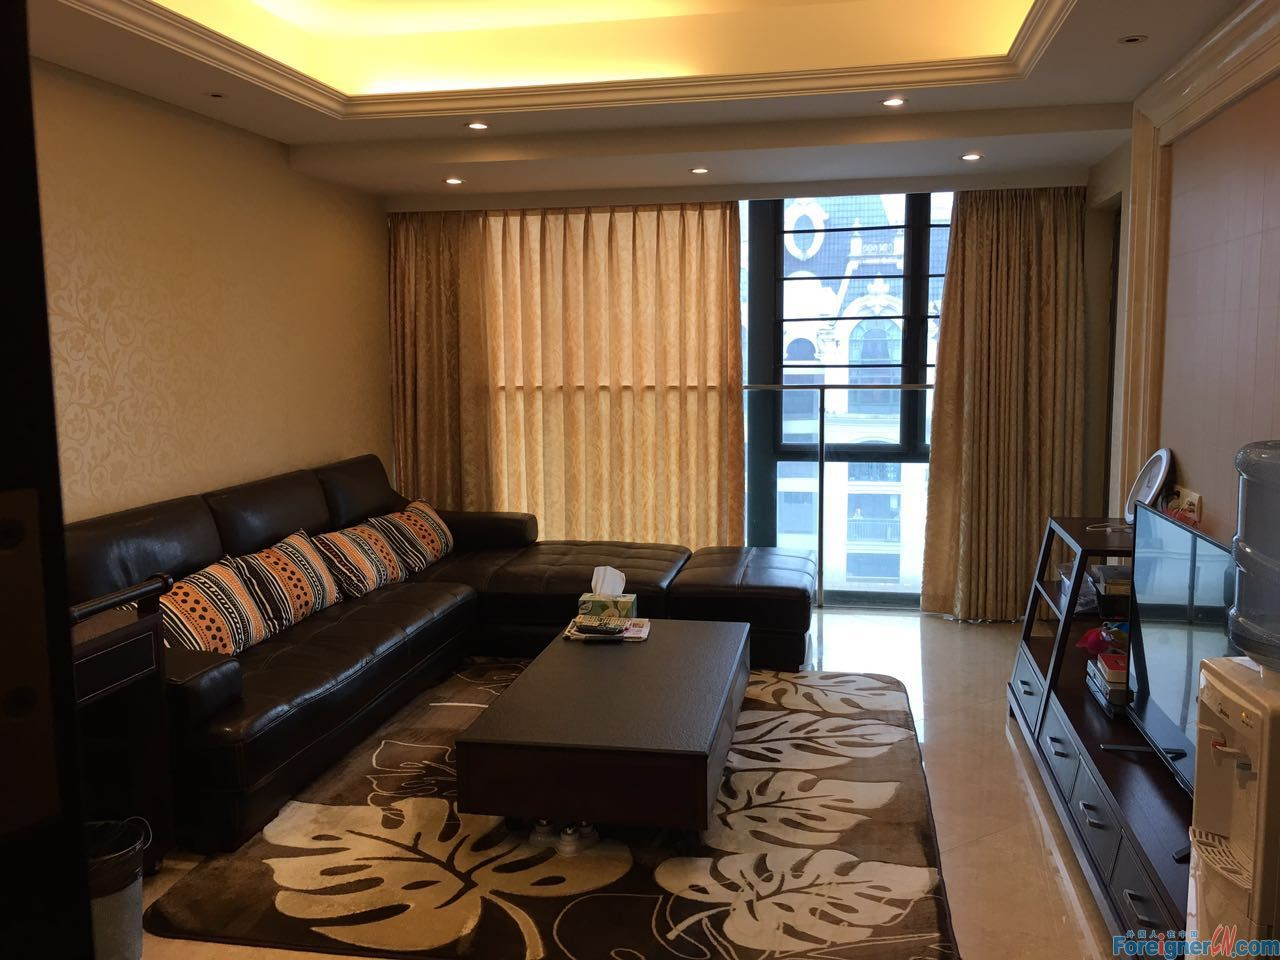 Pear River Garden-nice 2brs,fully furnished,high floor,wonderful view,CBD area.